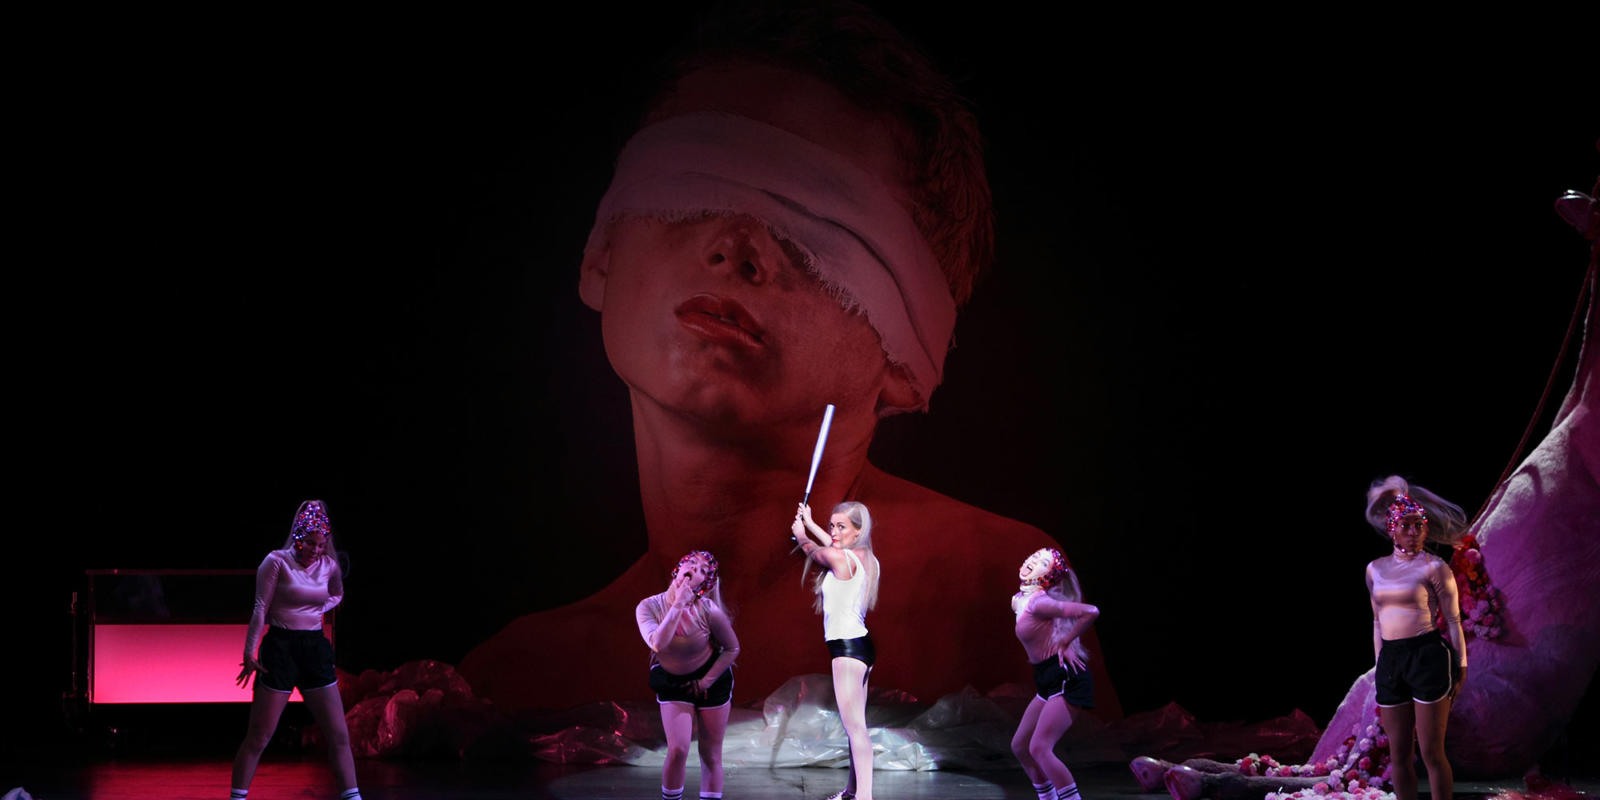 Salome title role posed with a baseball bat surrounded by dancers wearing sporting gear and sparkly headbands